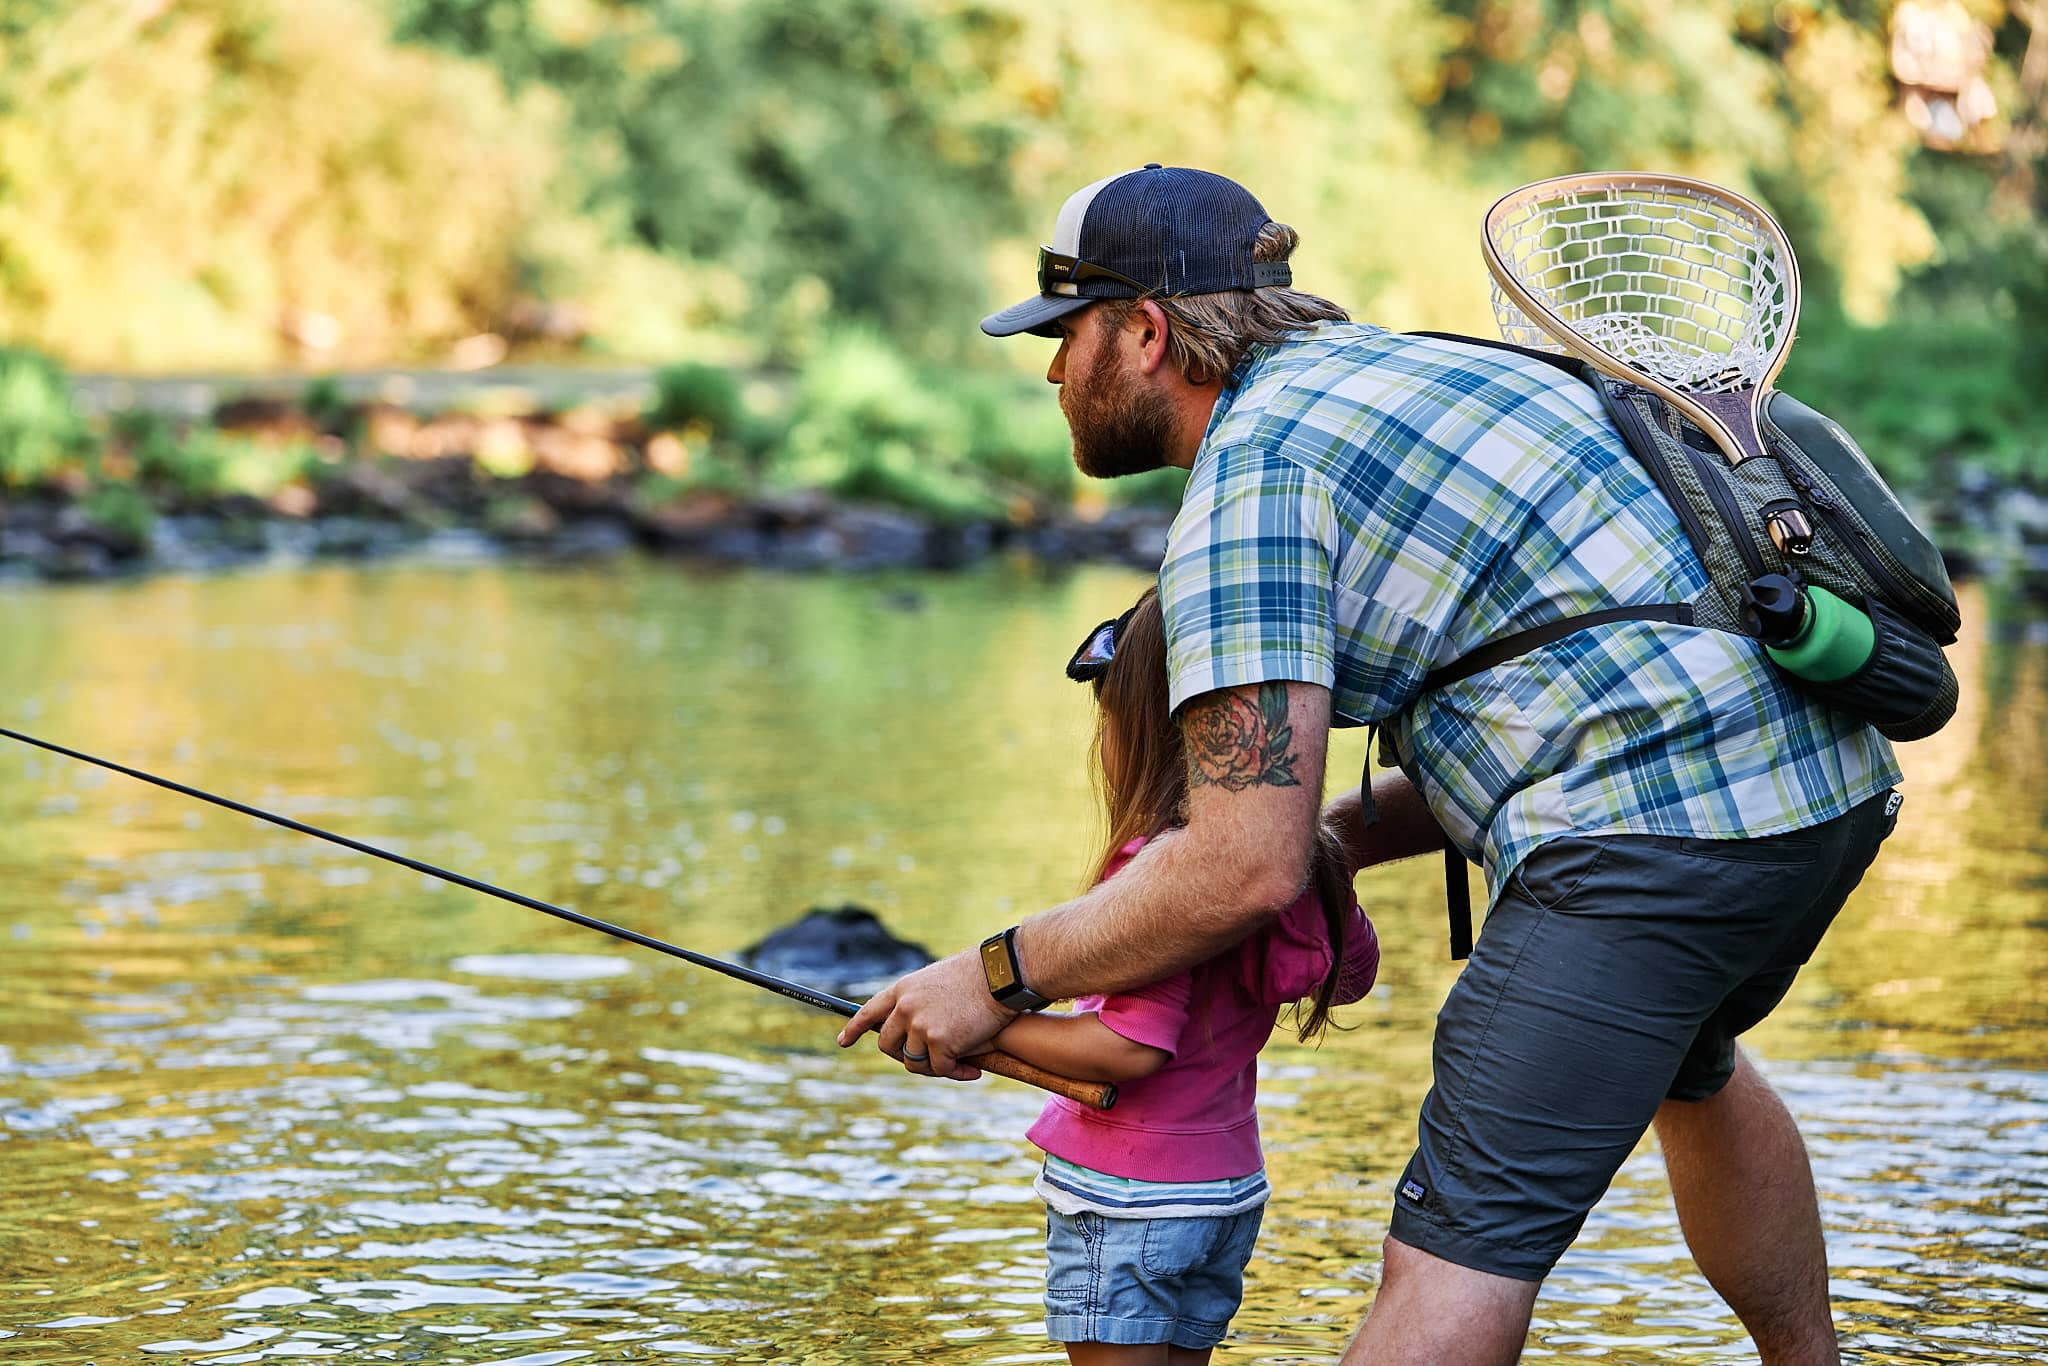 Dad watching the water while teaching his daughter to fish